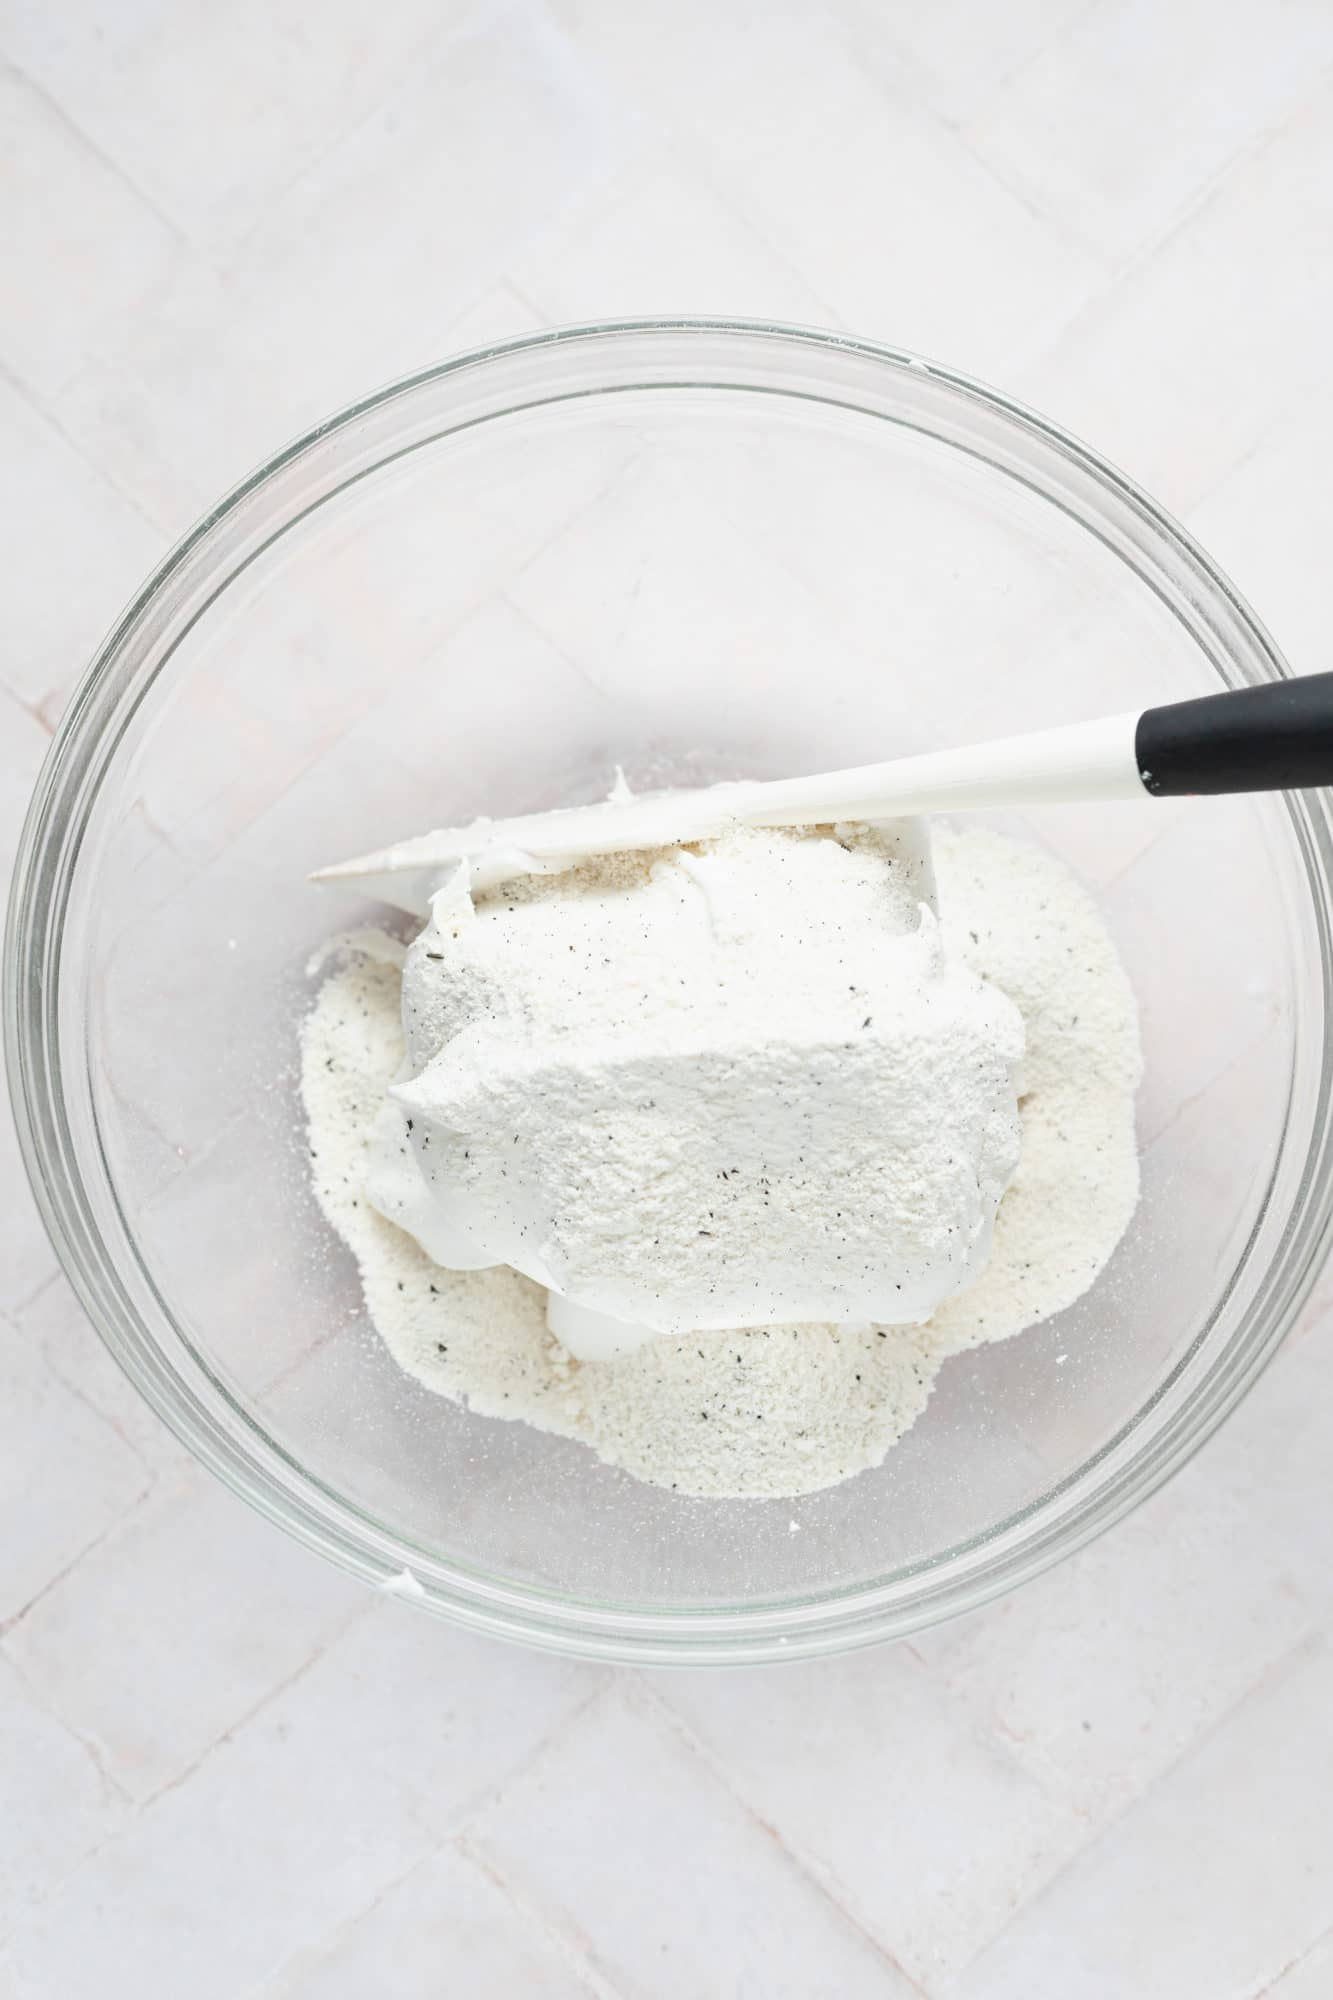 adding the dry ingredients to the meringue